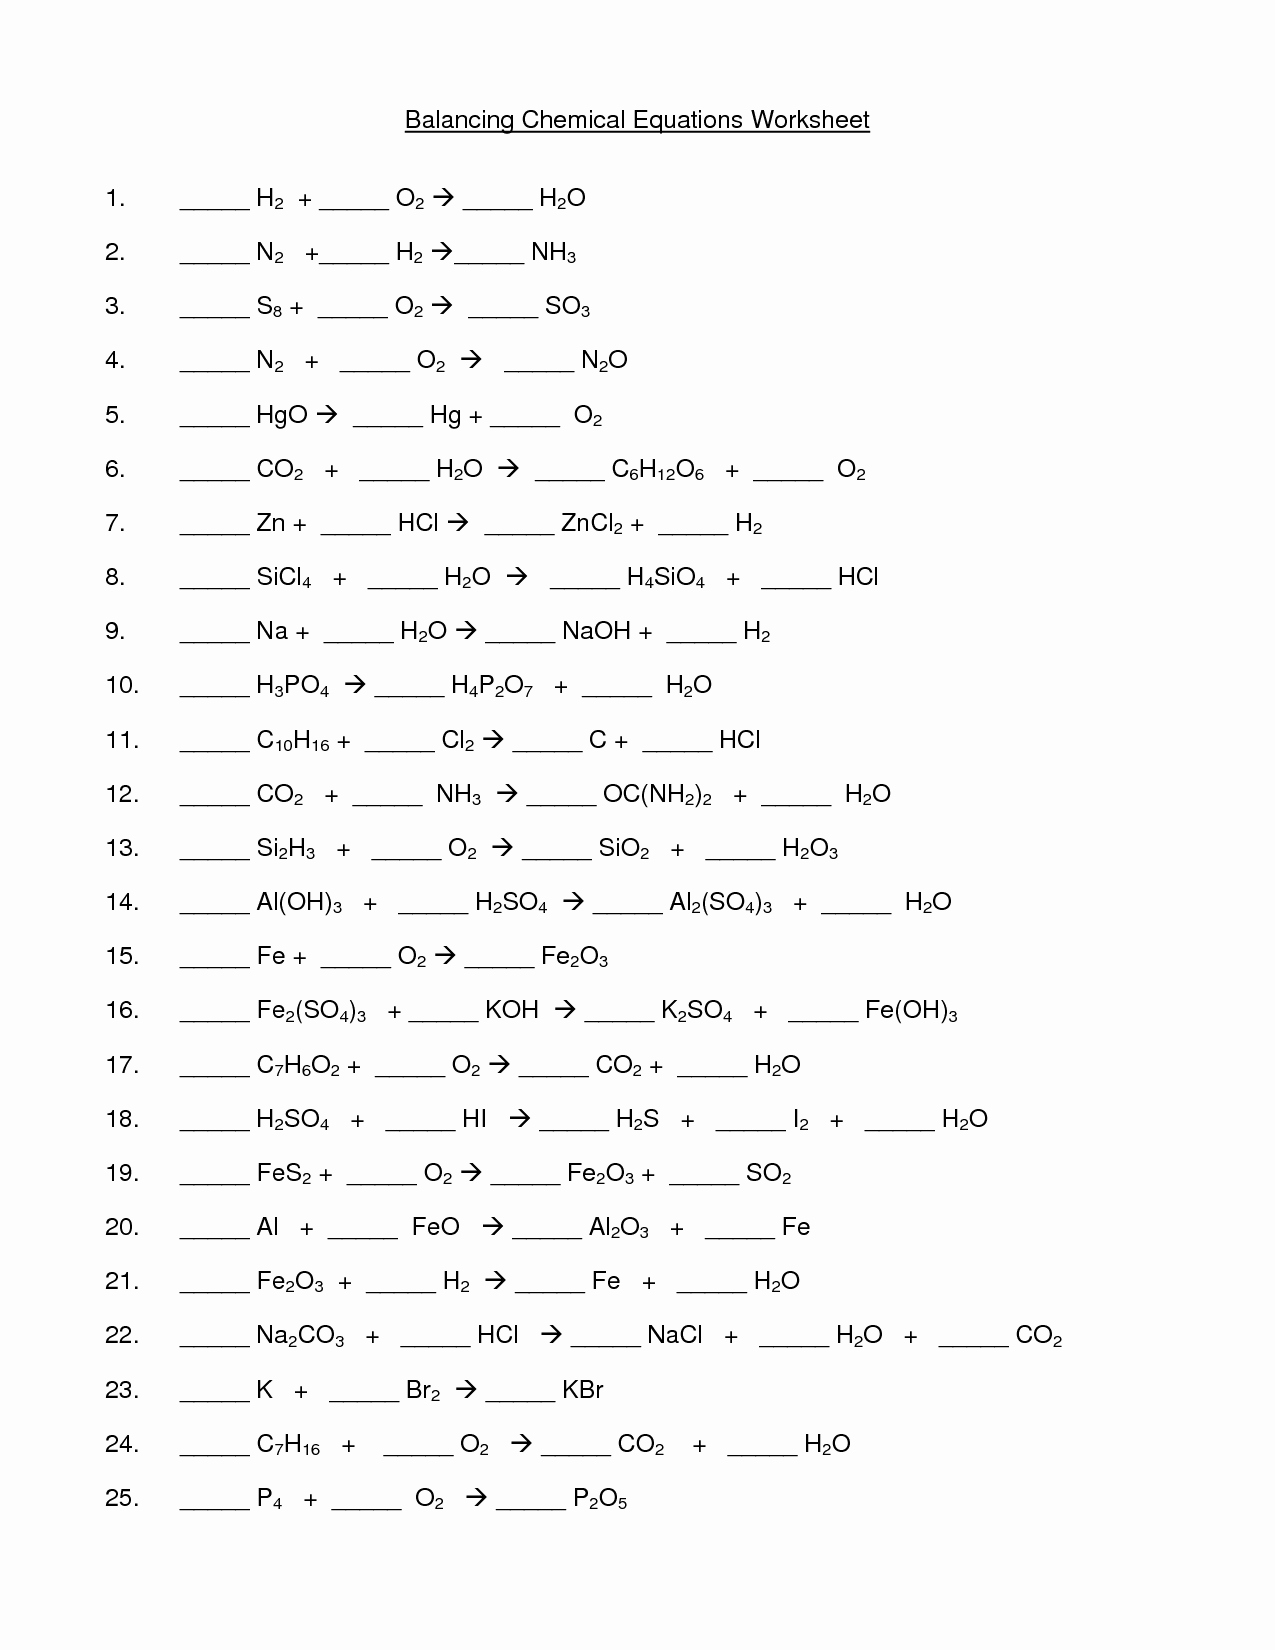 Balancing Chemical Equations Worksheet 1 Unique 12 Best Of Balancing Chemical Equations Worksheet